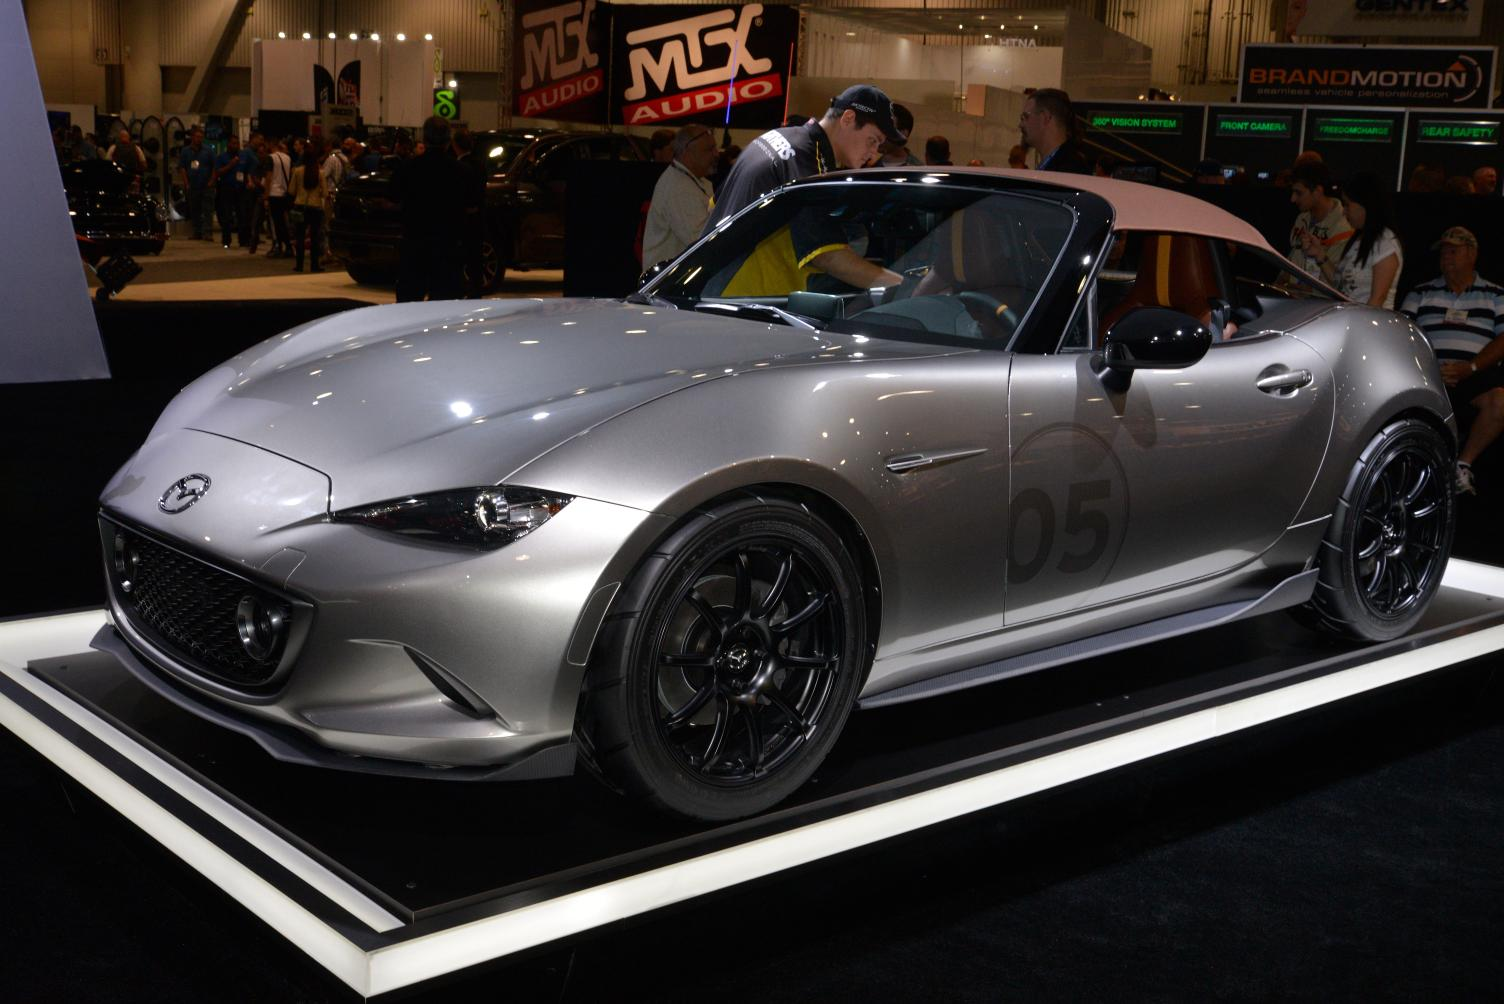 https://s1.cdn.autoevolution.com/images/news/gallery/mazda-developing-cheap-carbon-fiber-for-next-mx-5_6.jpg